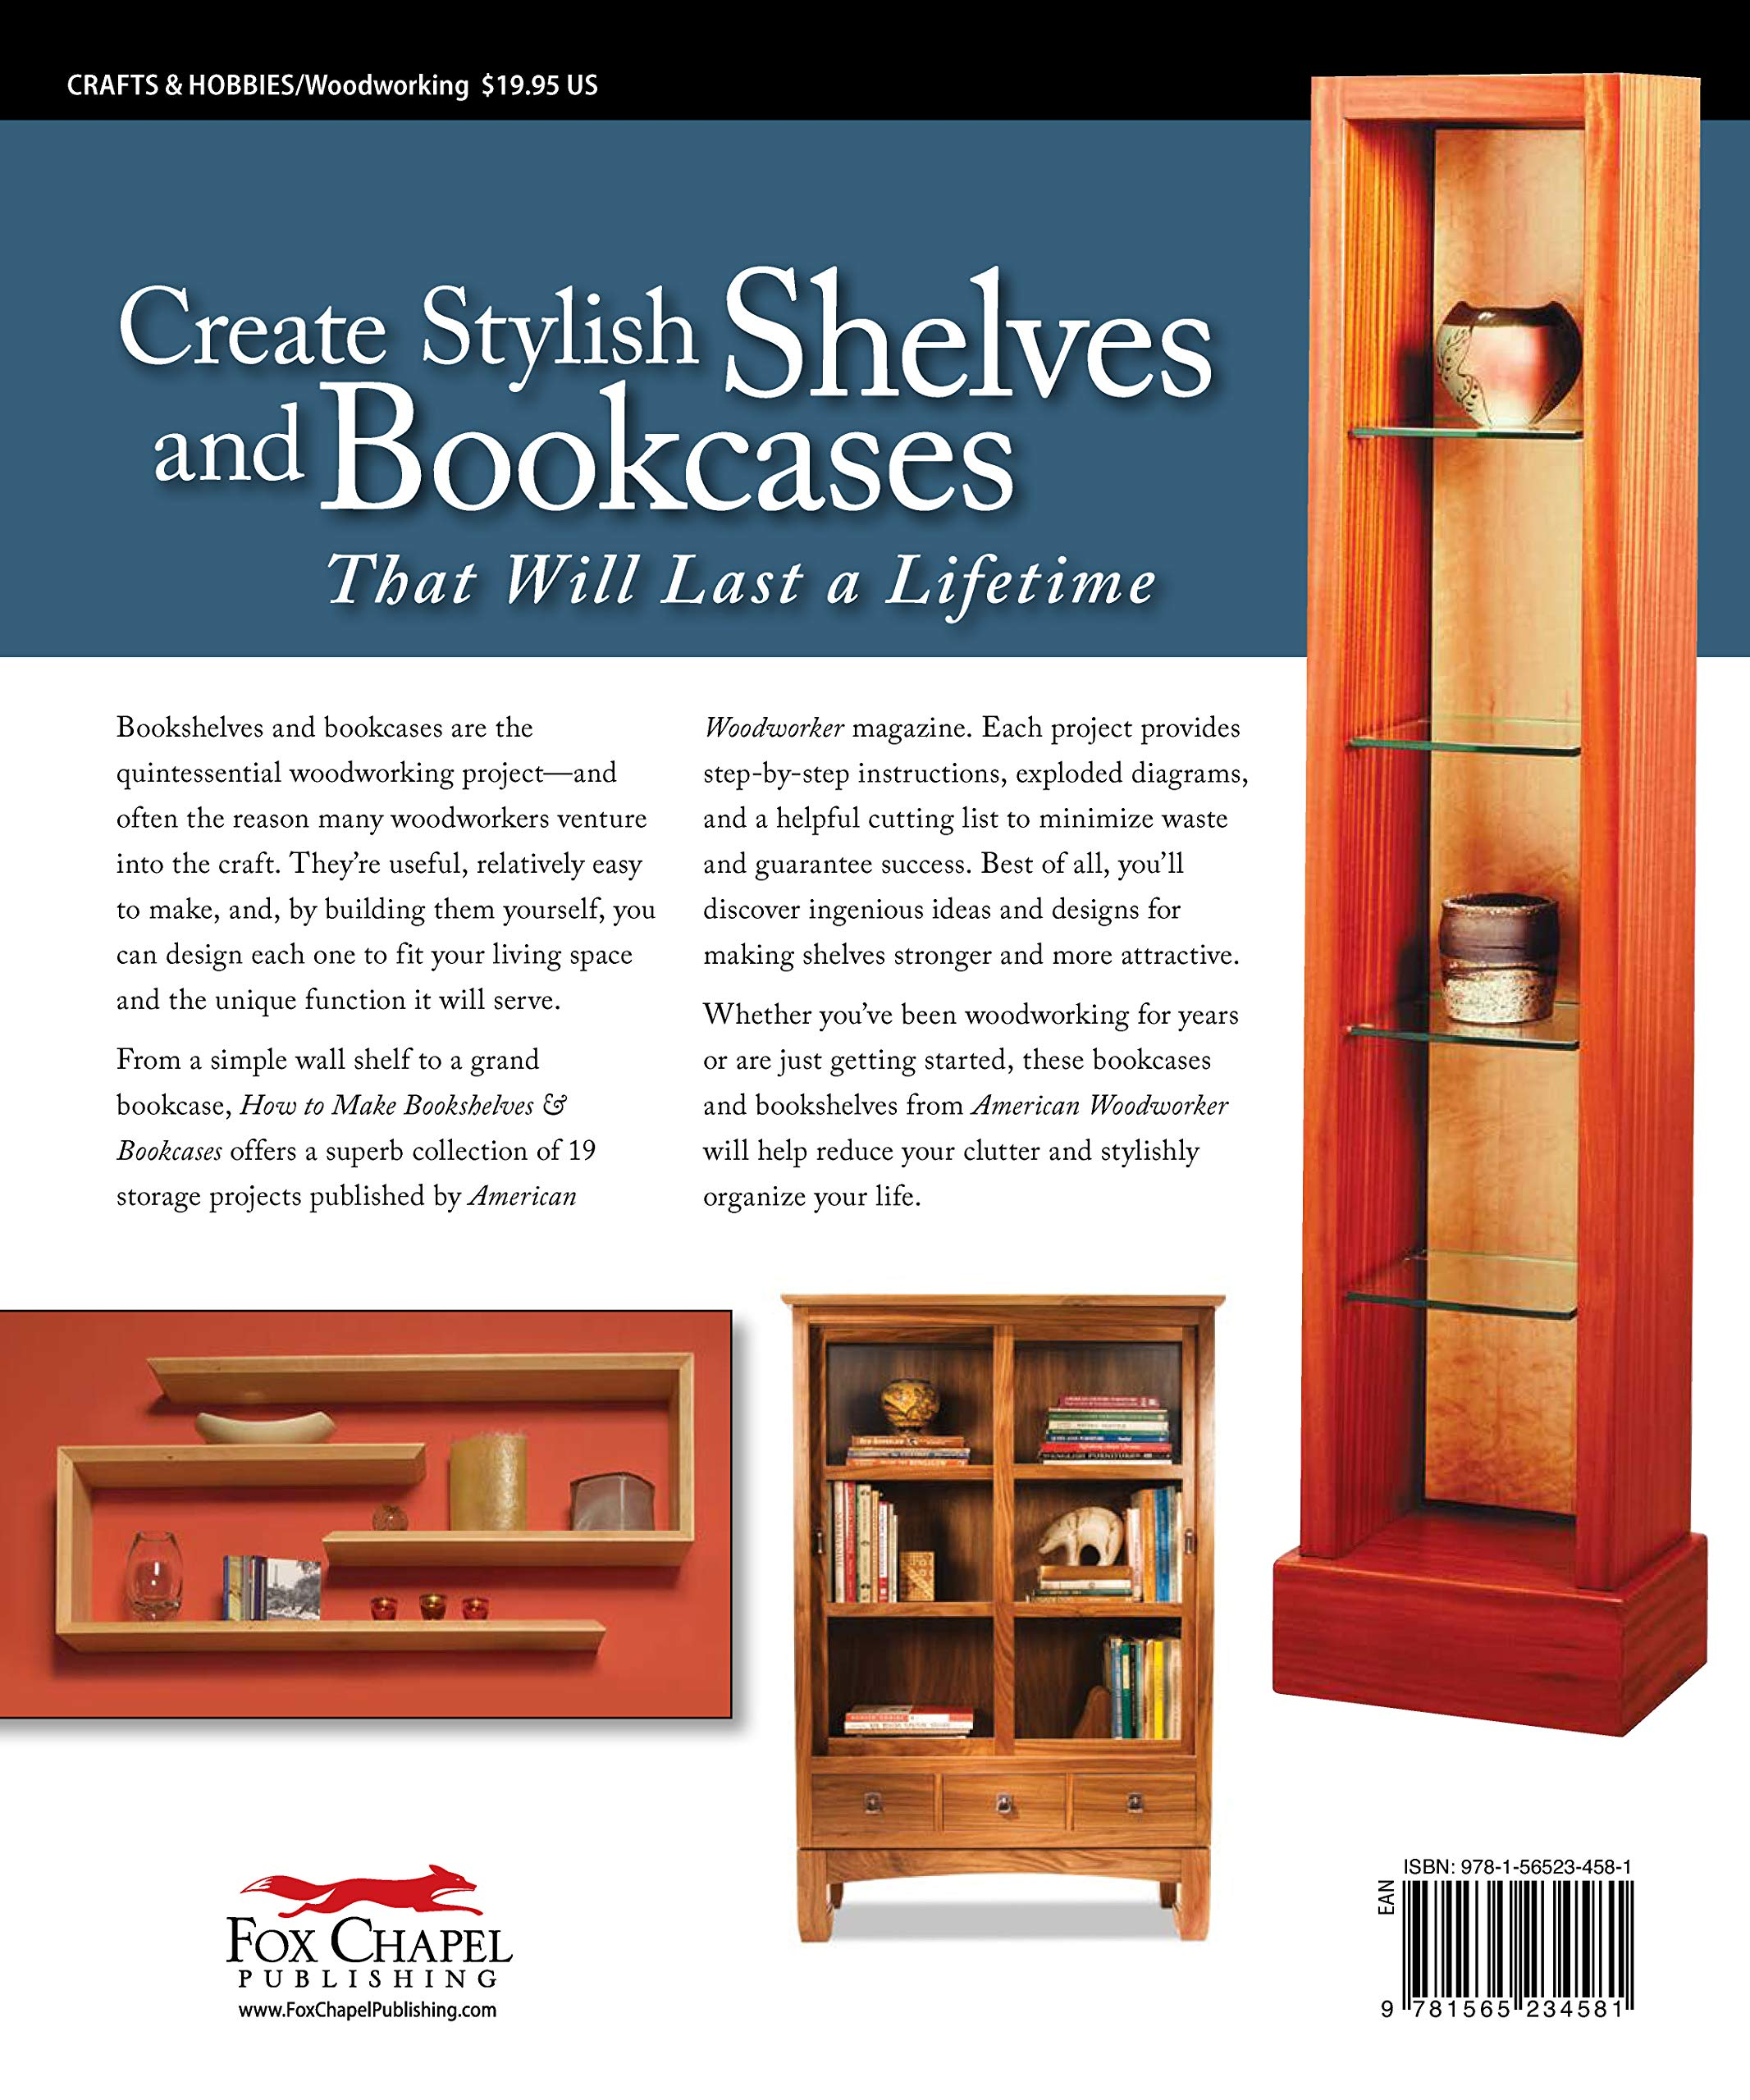 How To Make Bookshelves Bookcases Best Of Aw 19 Outstanding